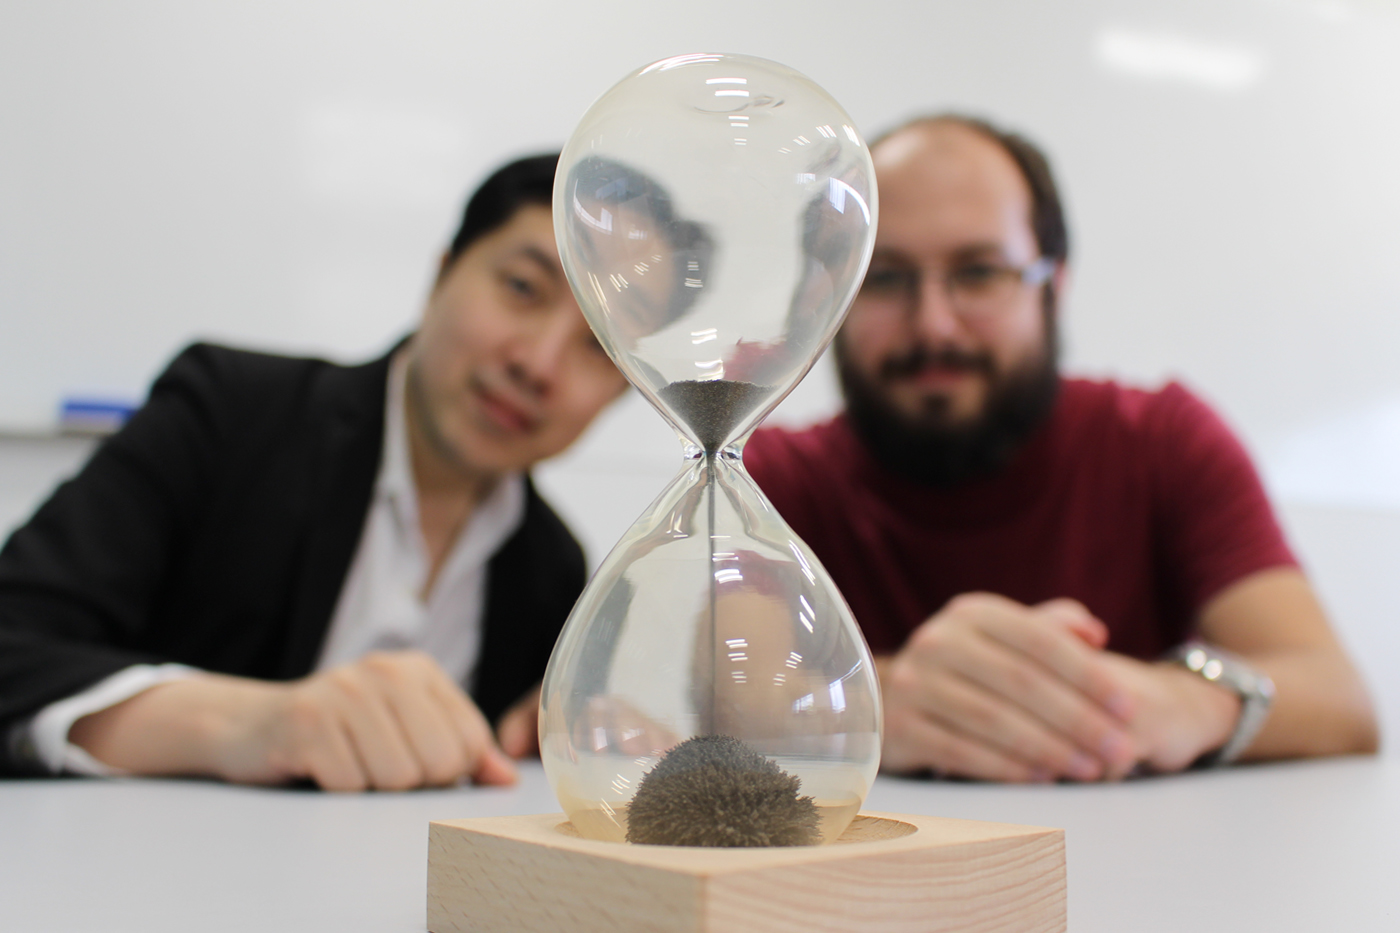 Researchers Mile Gu and Thomas Elliott pictured with an hourglass